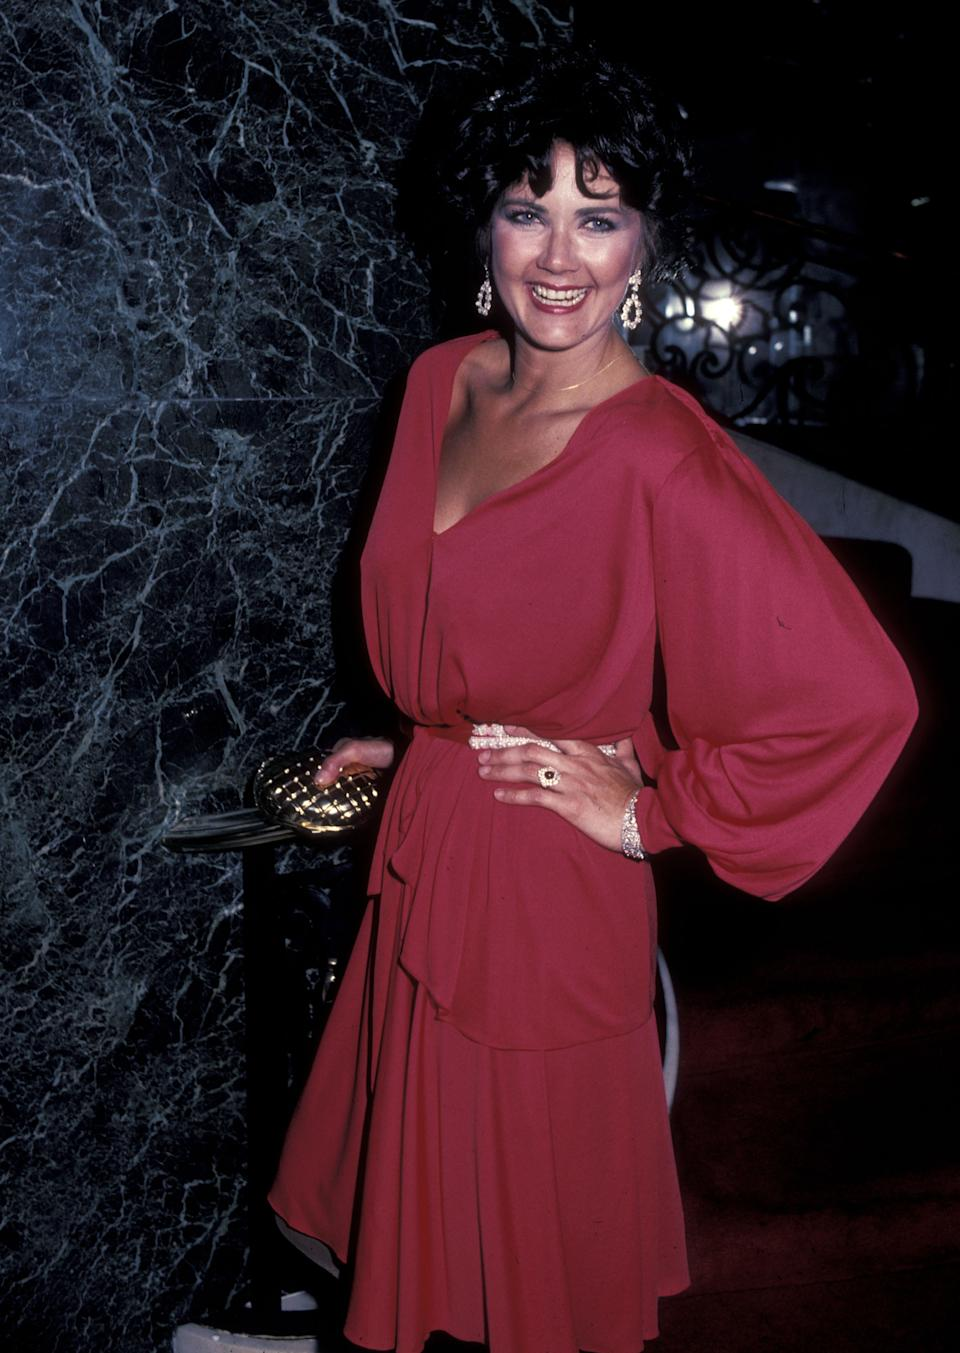 Lynda Carter en la gala que fue reconocida como la Hispanic Woman of the Year en 1983. (Photo by Ron Galella, Ltd./Ron Galella Collection via Getty Images)